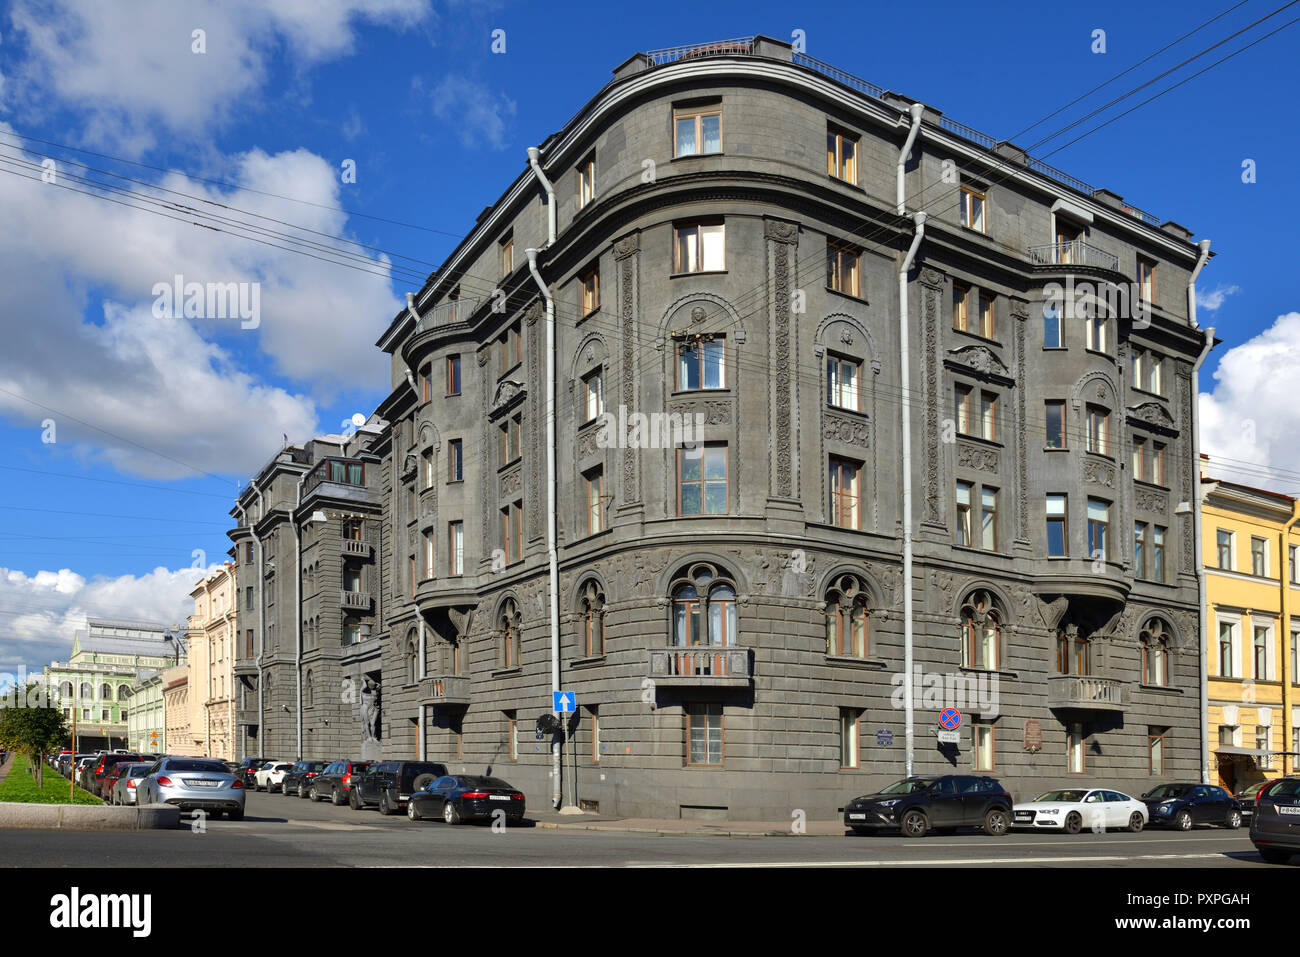 Profitable House Vege.  Built by architect Ovsyannikov in early 20th century - Stock Image